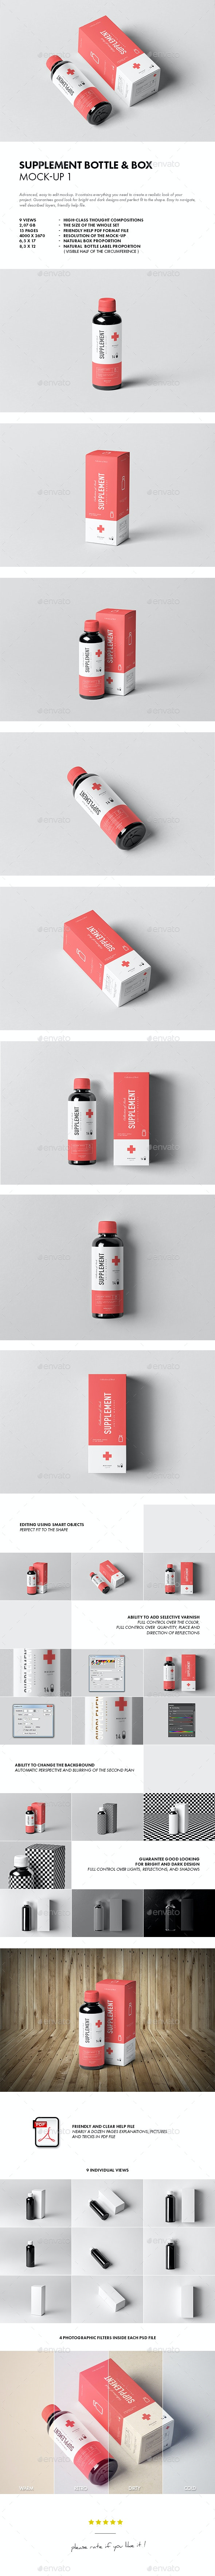 Supplement Bottle & Box Mock-up 1 - Miscellaneous Packaging